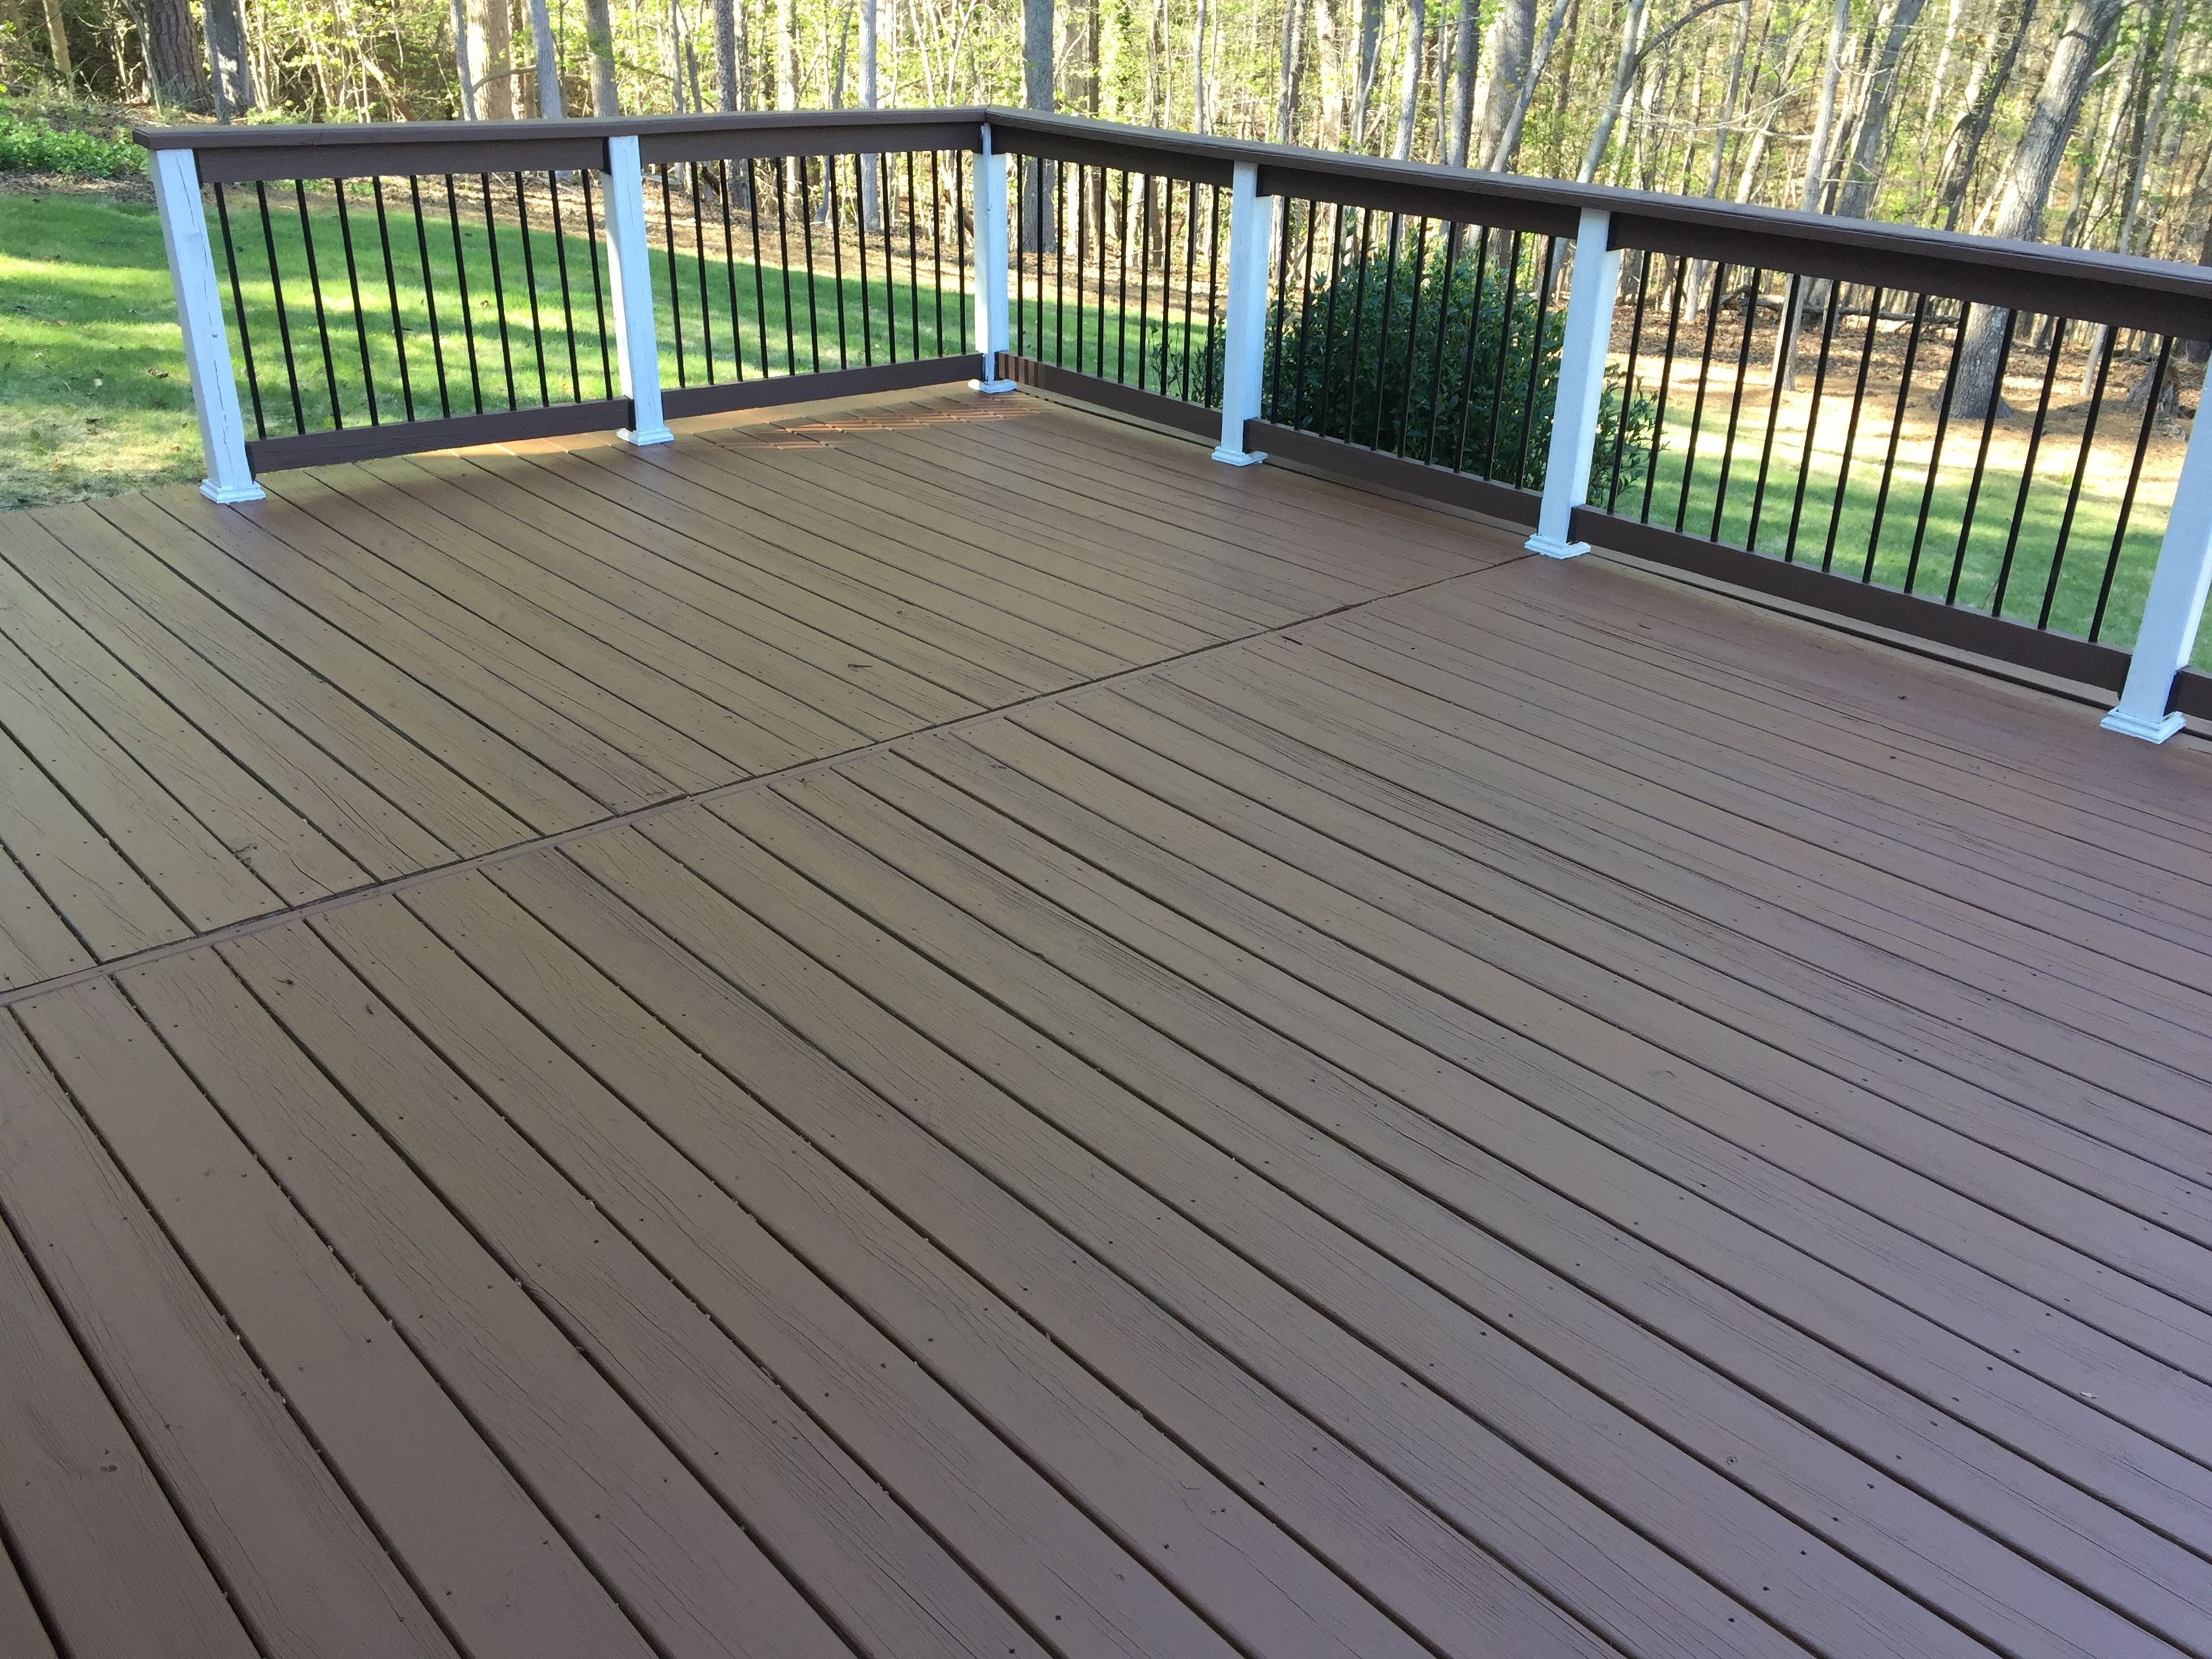 Did The Deck Today And Love The Double Shade Deck Paint Colors Behr Chocolate On Deck With Behr White And Behr Wo Deck Paint Colors Deck Paint Deck Over Paint